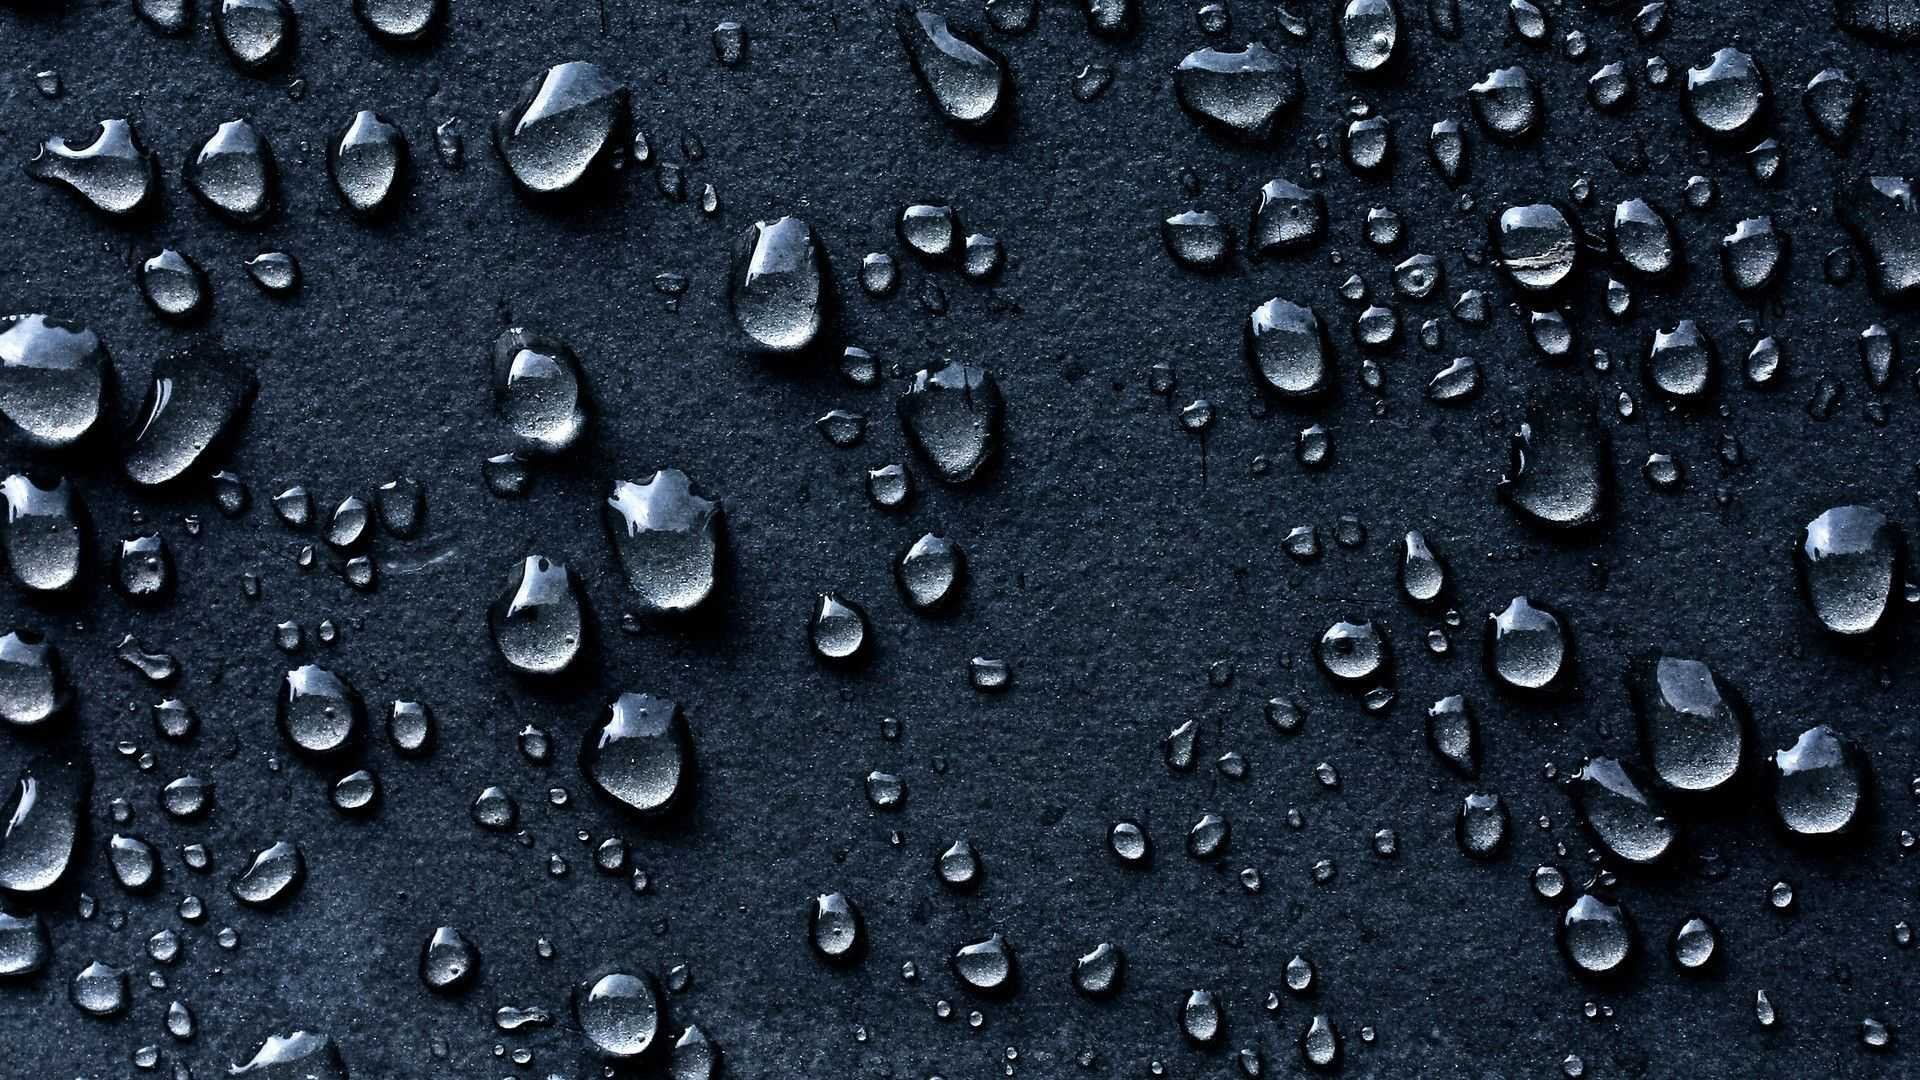 Water Drops HD 1080p Wallpapers Downoads